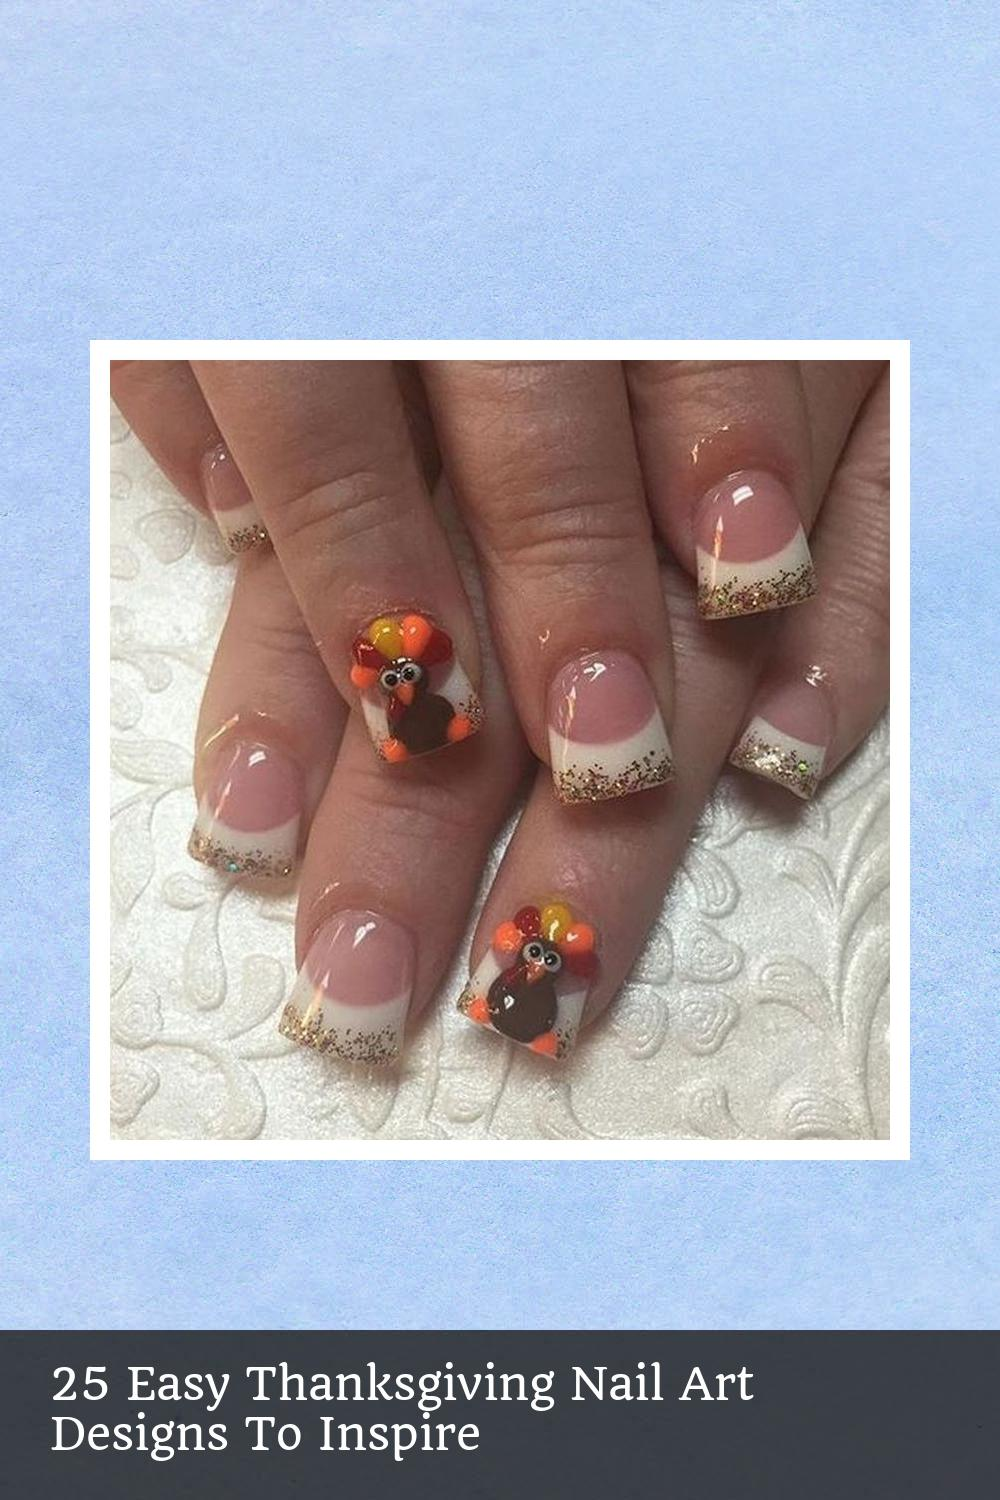 25 Easy Thanksgiving Nail Art Designs To Inspire 4